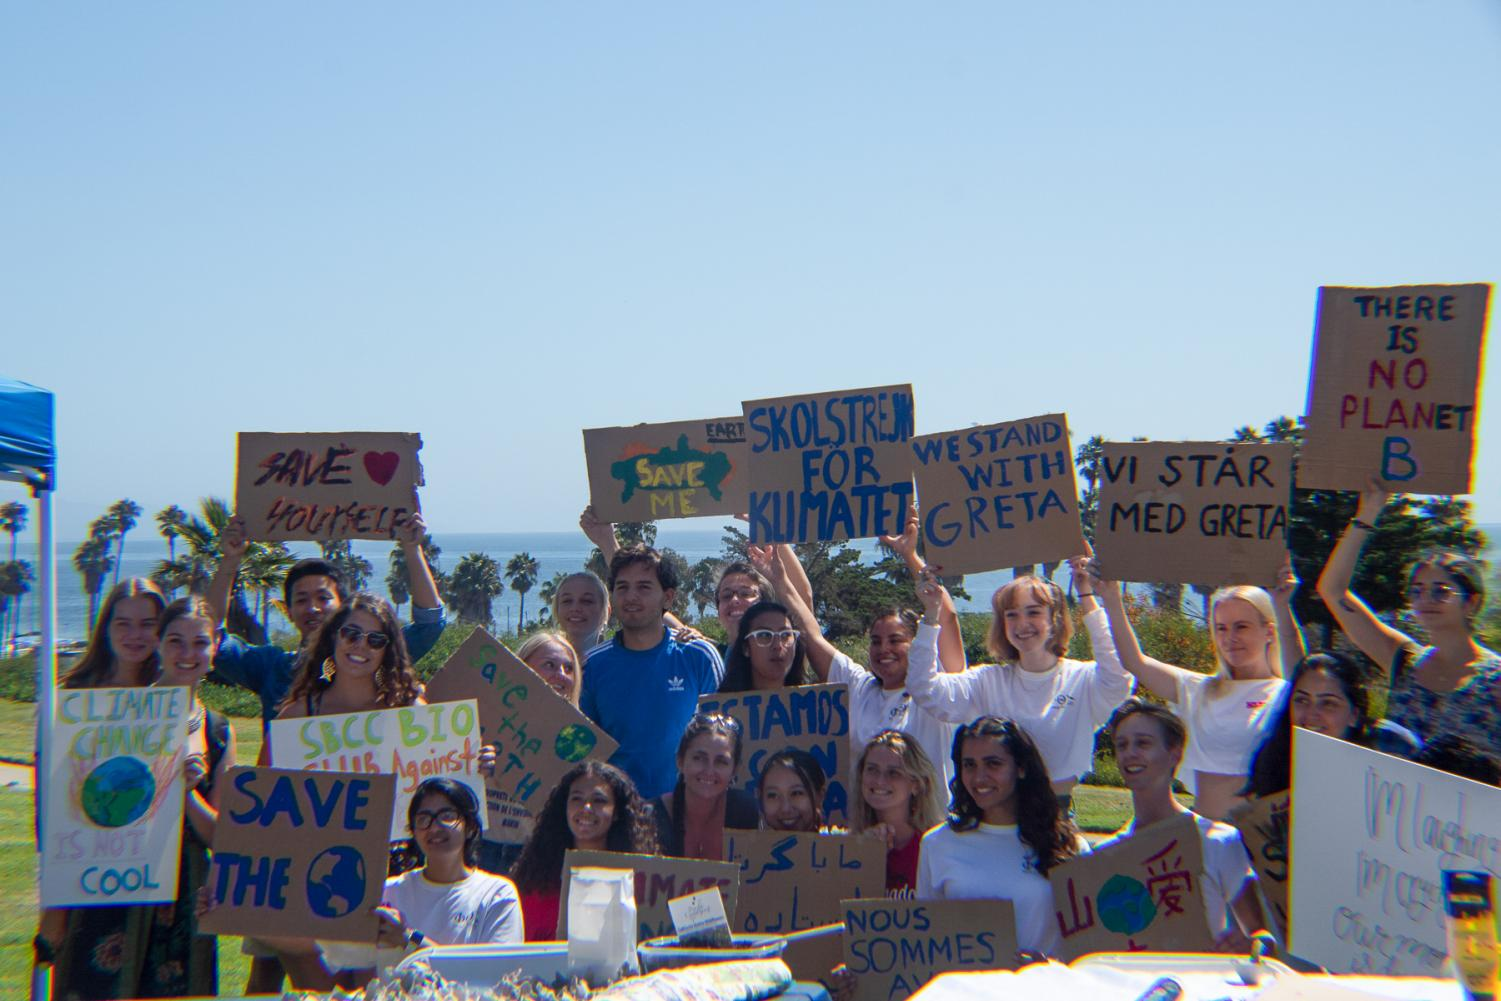 Protesters gathered to show their signs towards the end of the strike to spread the word about climate change, on Sept. 20, 2019, on West Campus at City College in Santa Barbara, Calif.